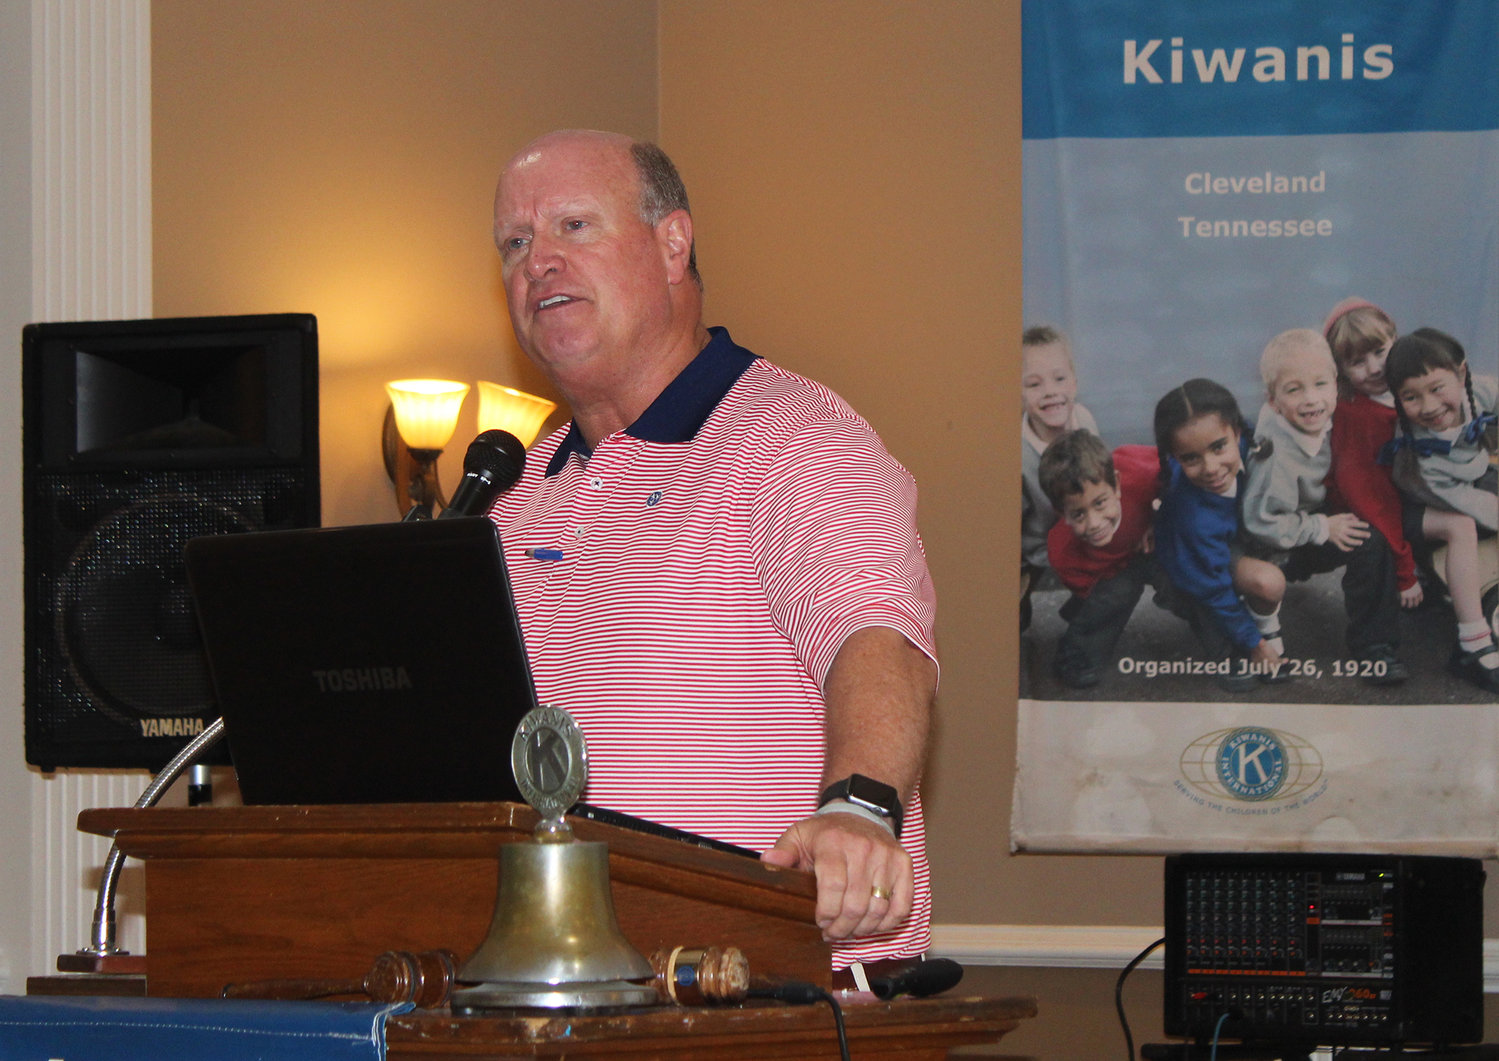 JIM GIBSON, of Cleveland's First Baptist Church, discusses the church's Nepal Ministry, which has been ongoing with mission trips  since 2005. Gibson and Dave Gregory were guest speakers at last week's Cleveland Kiwanis Club luncheon.